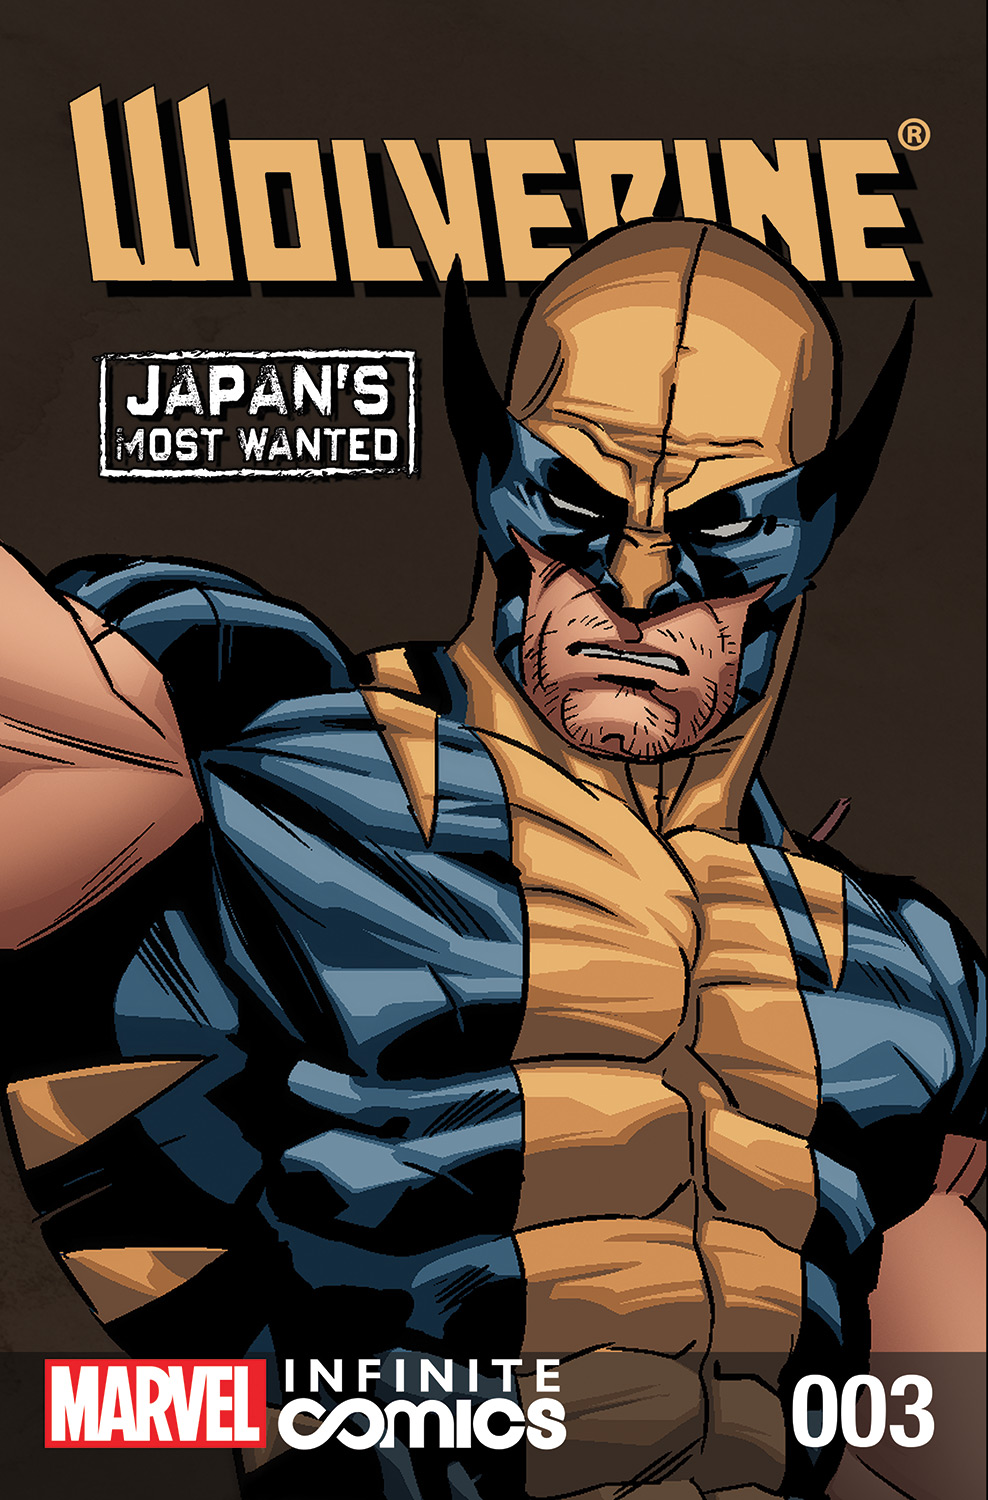 Wolverine: Japan's Most Wanted: Infinite Comic Vol 1 3